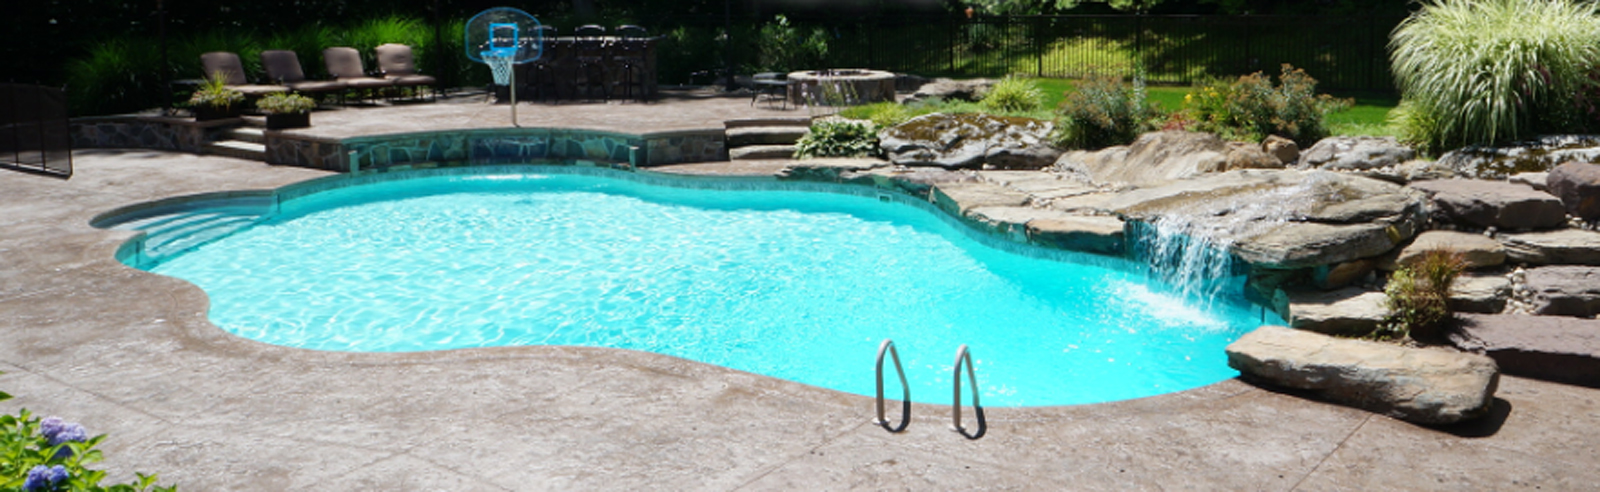 Swimming Pools Add Value To A Home How Much Is Up For Debate